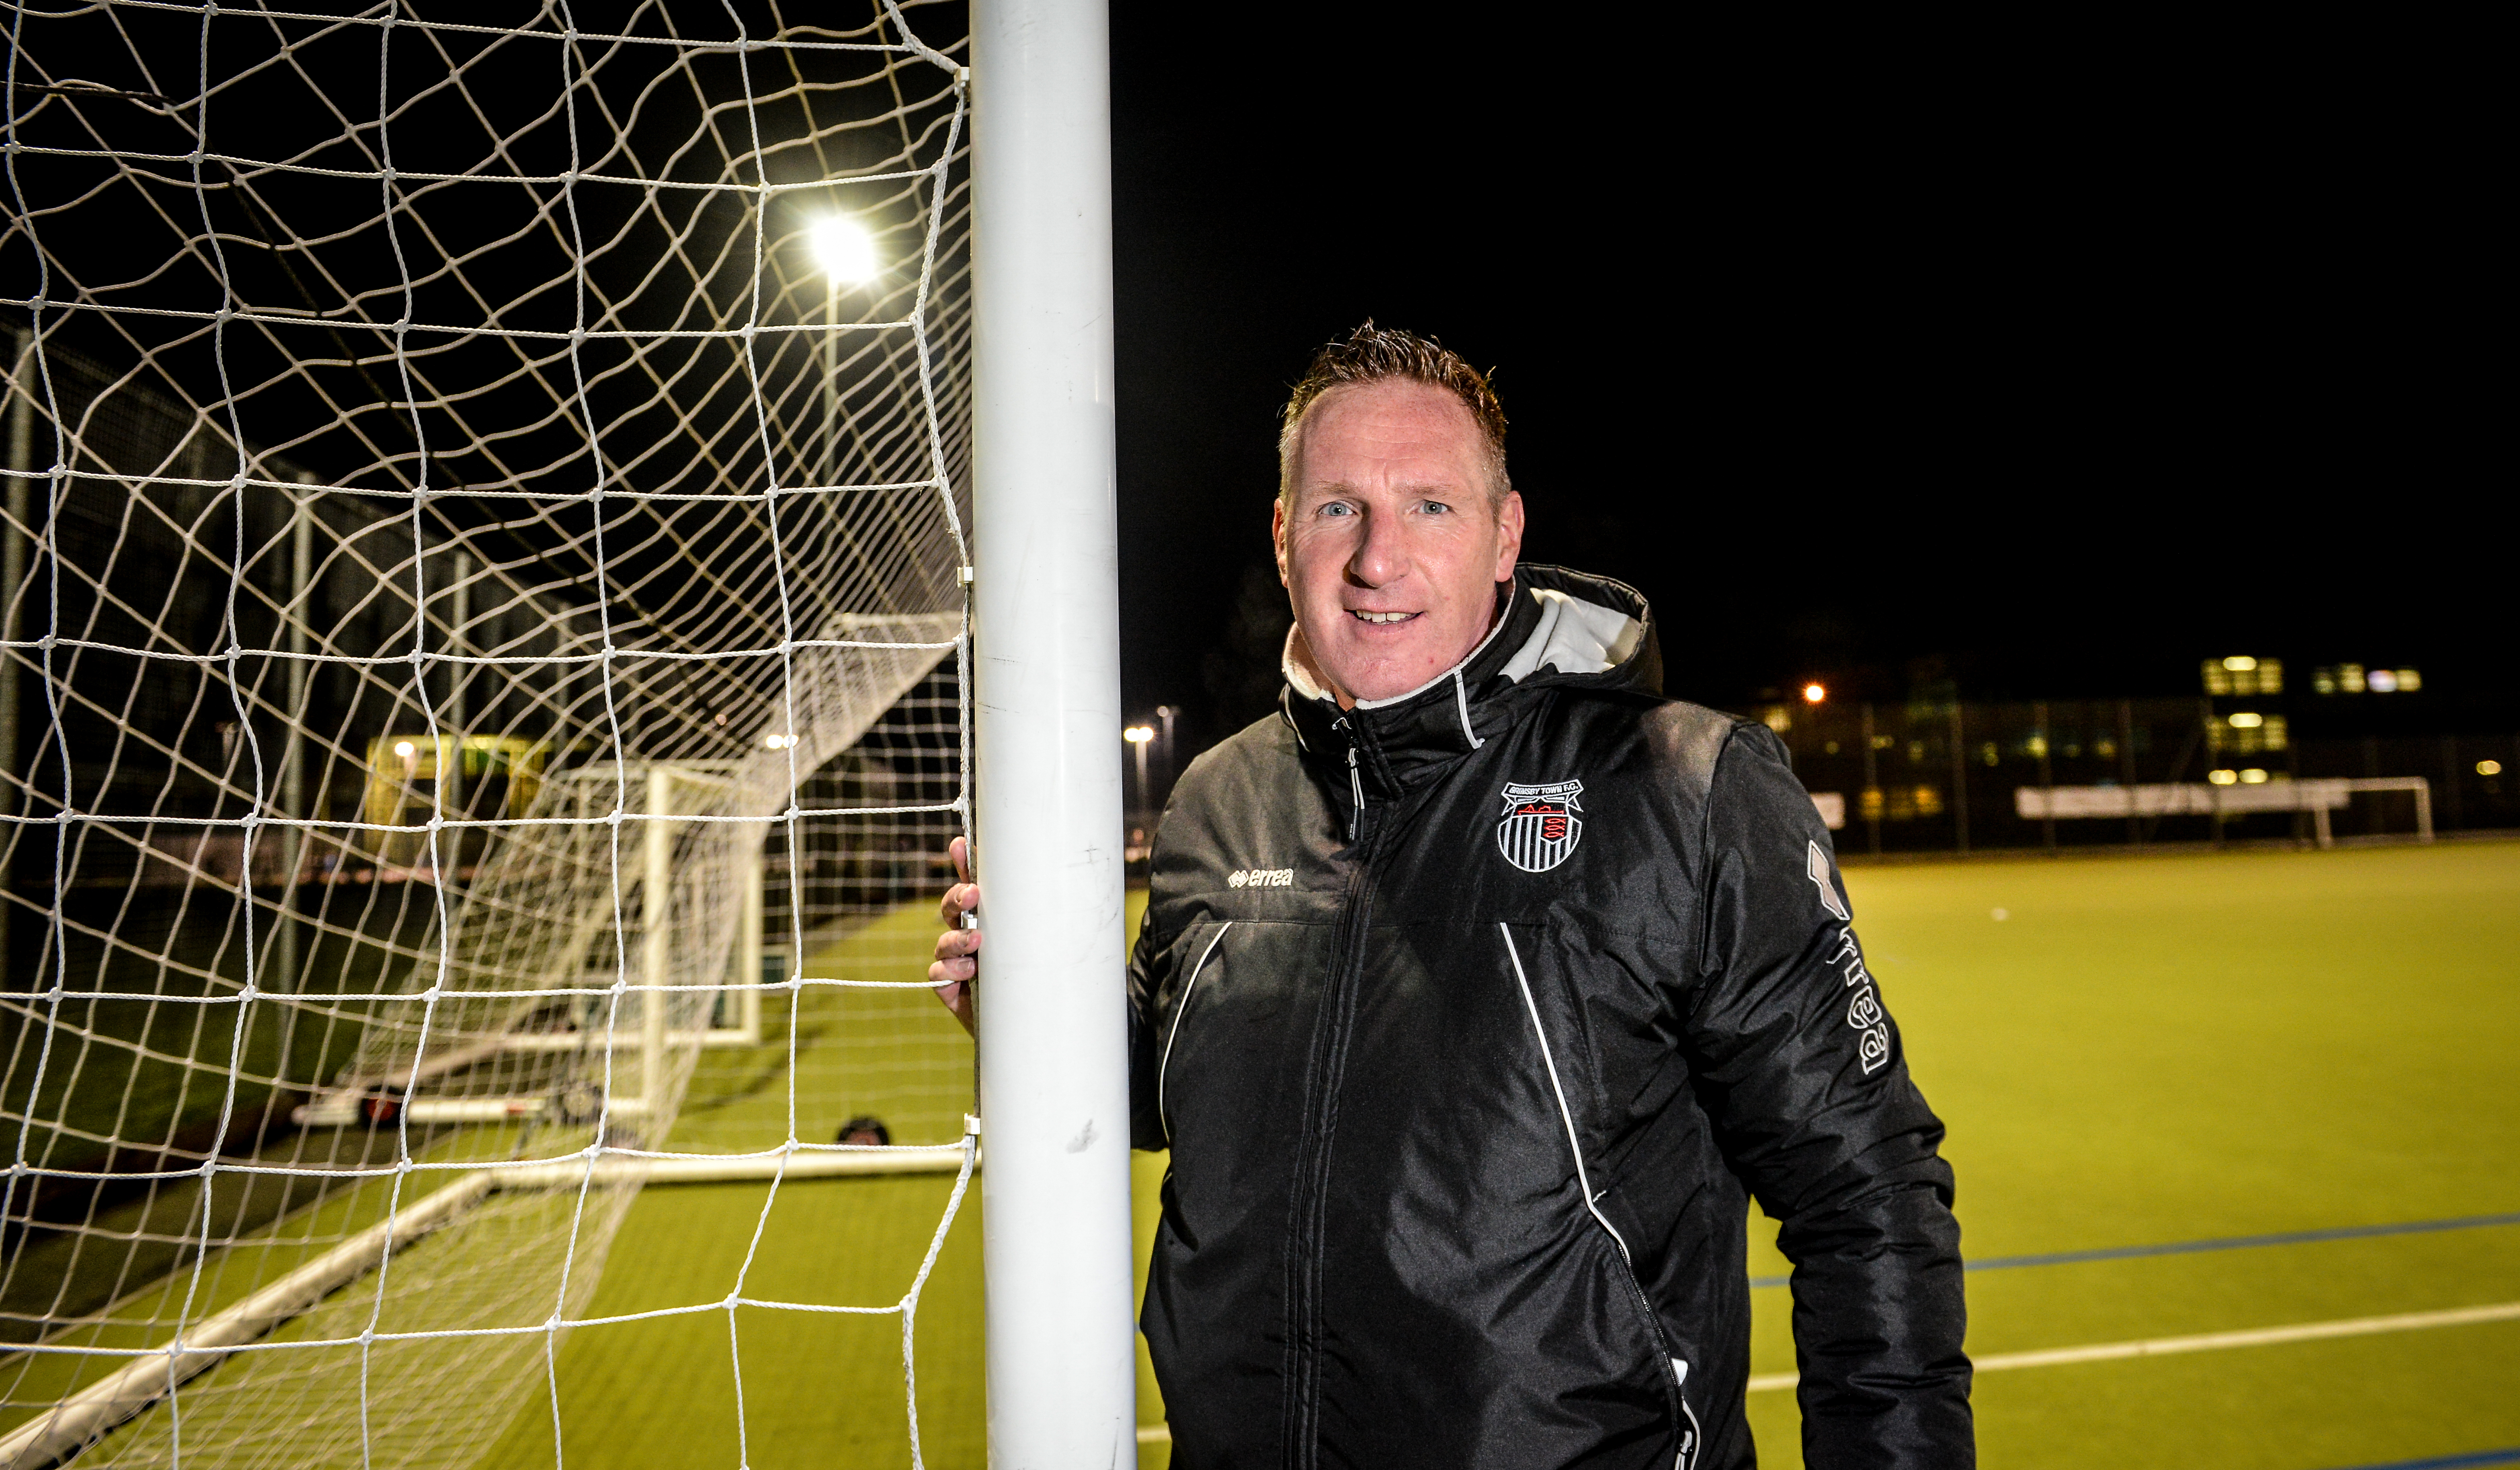 Brian at his other 'job' - as part-time coach with Grimsby Town's Youth Academy